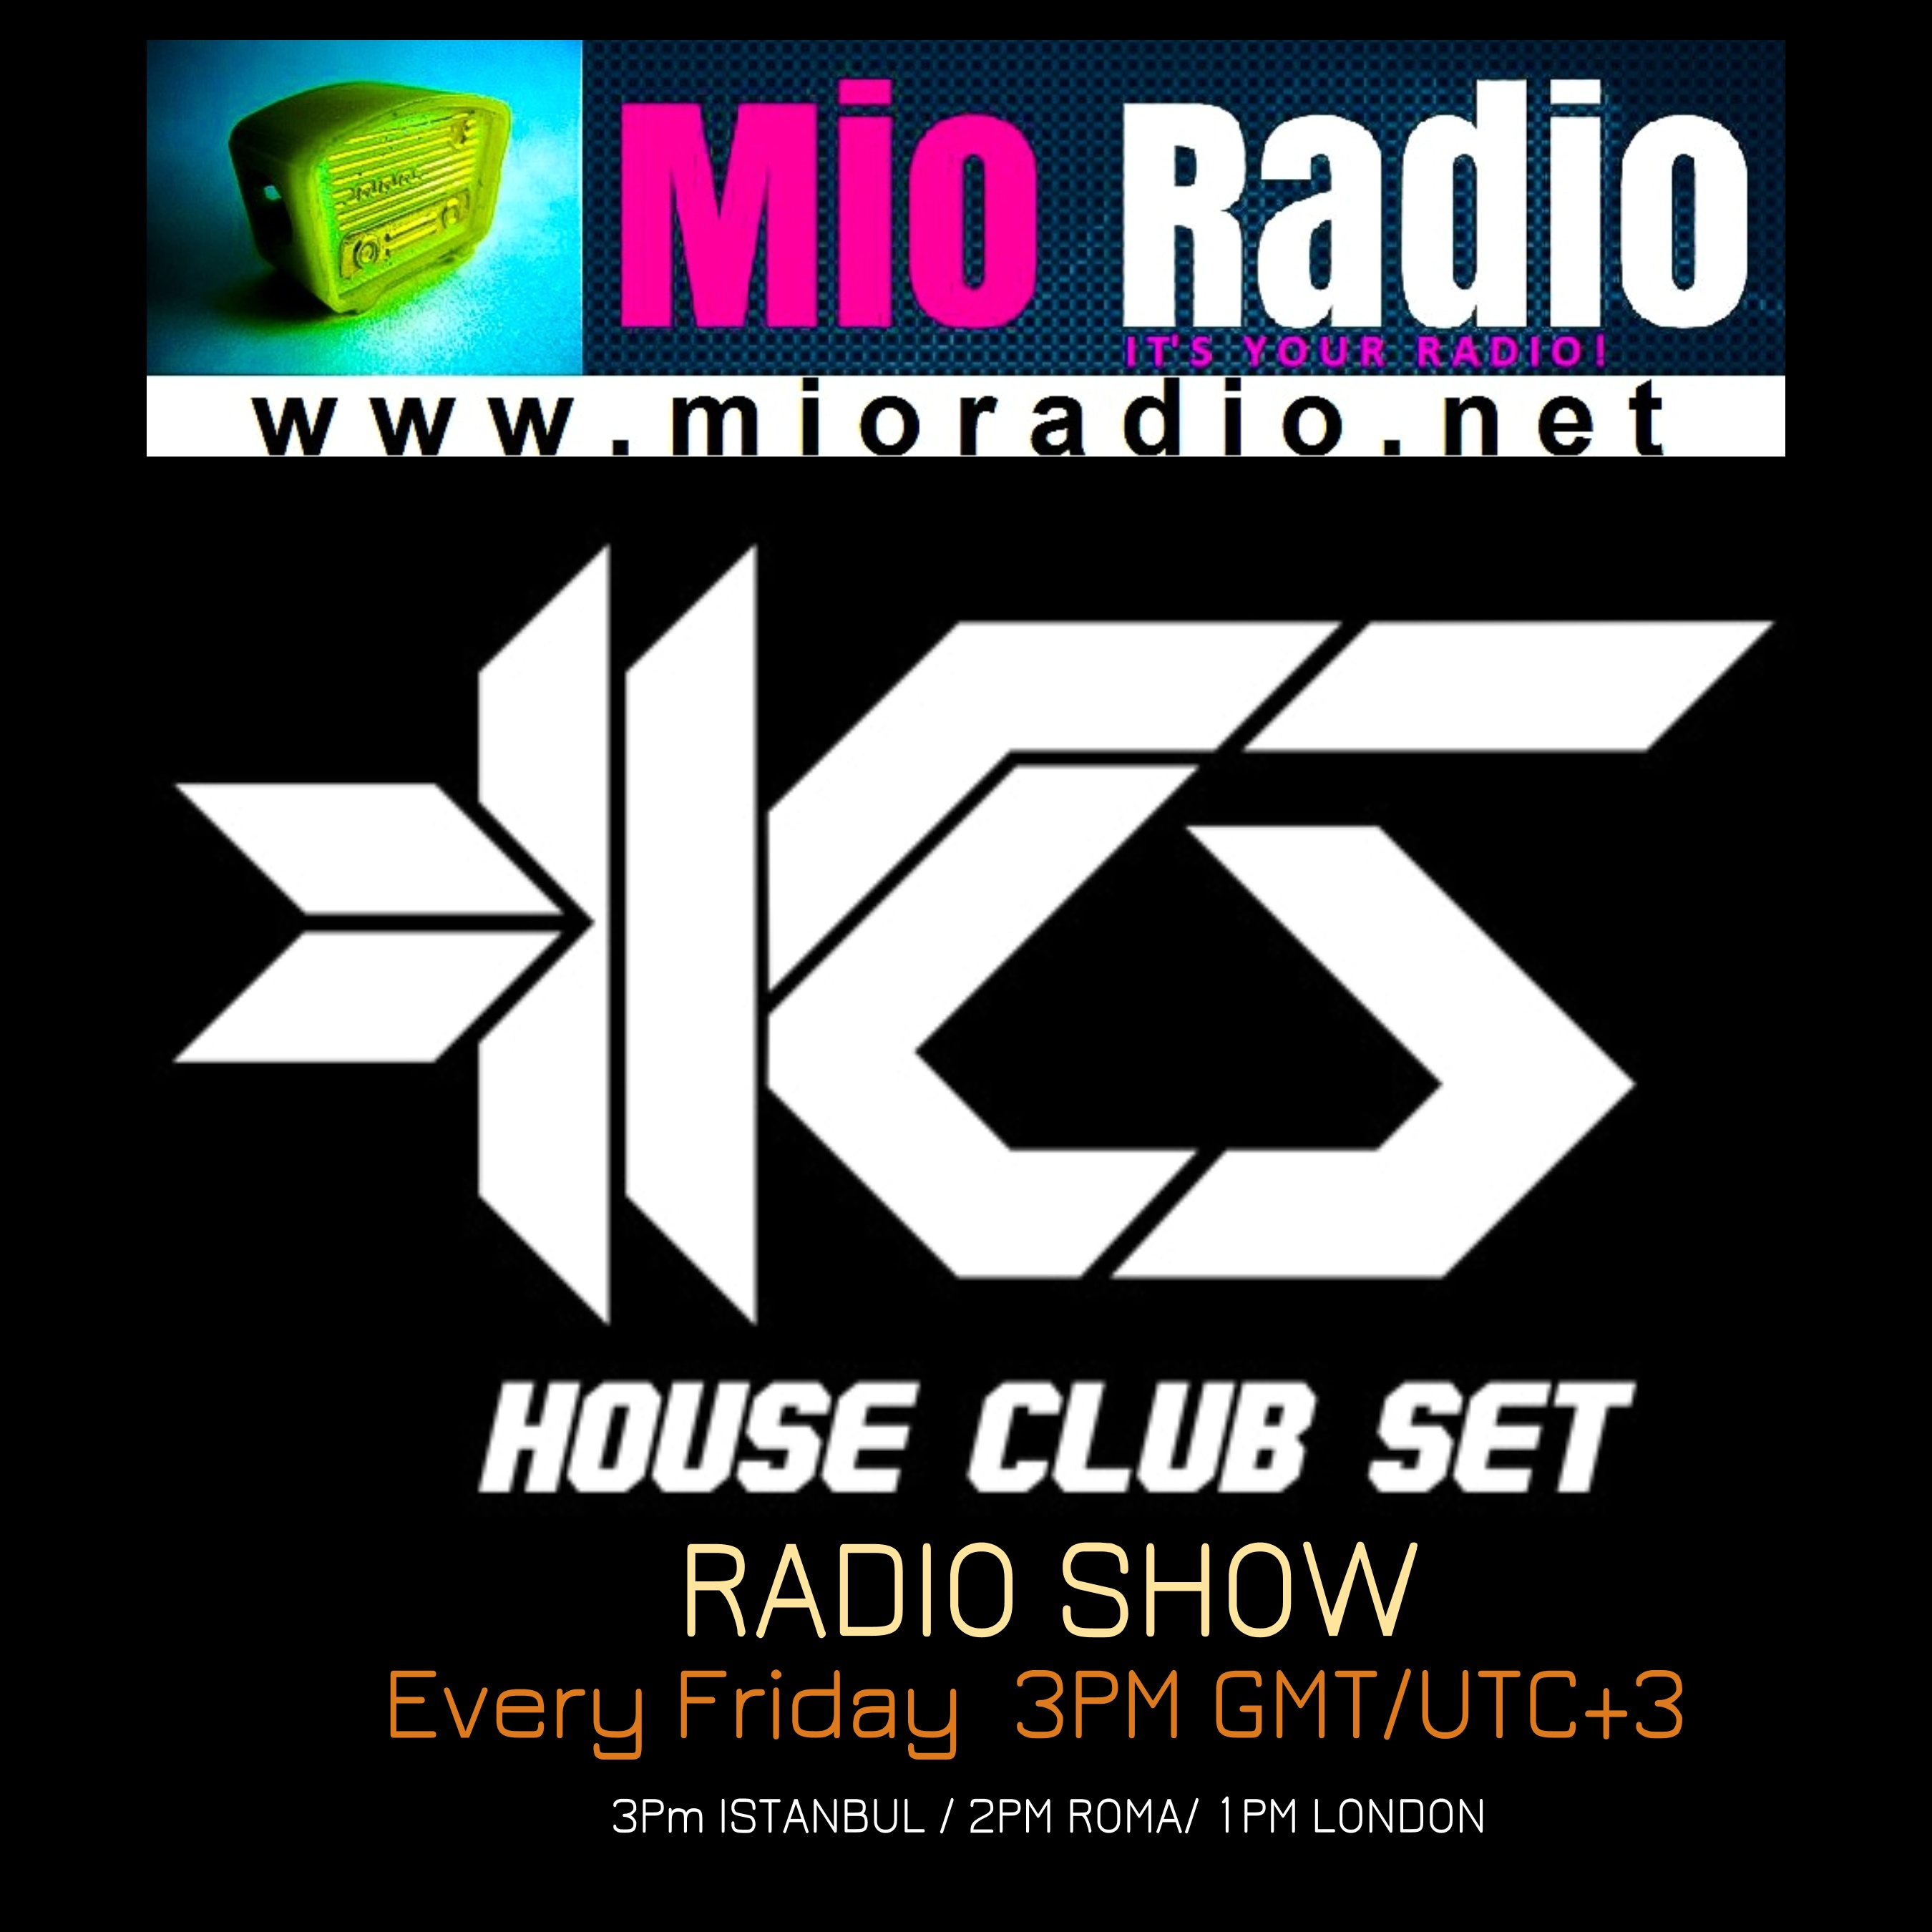 House Club Set Radio Show - Mio Radio